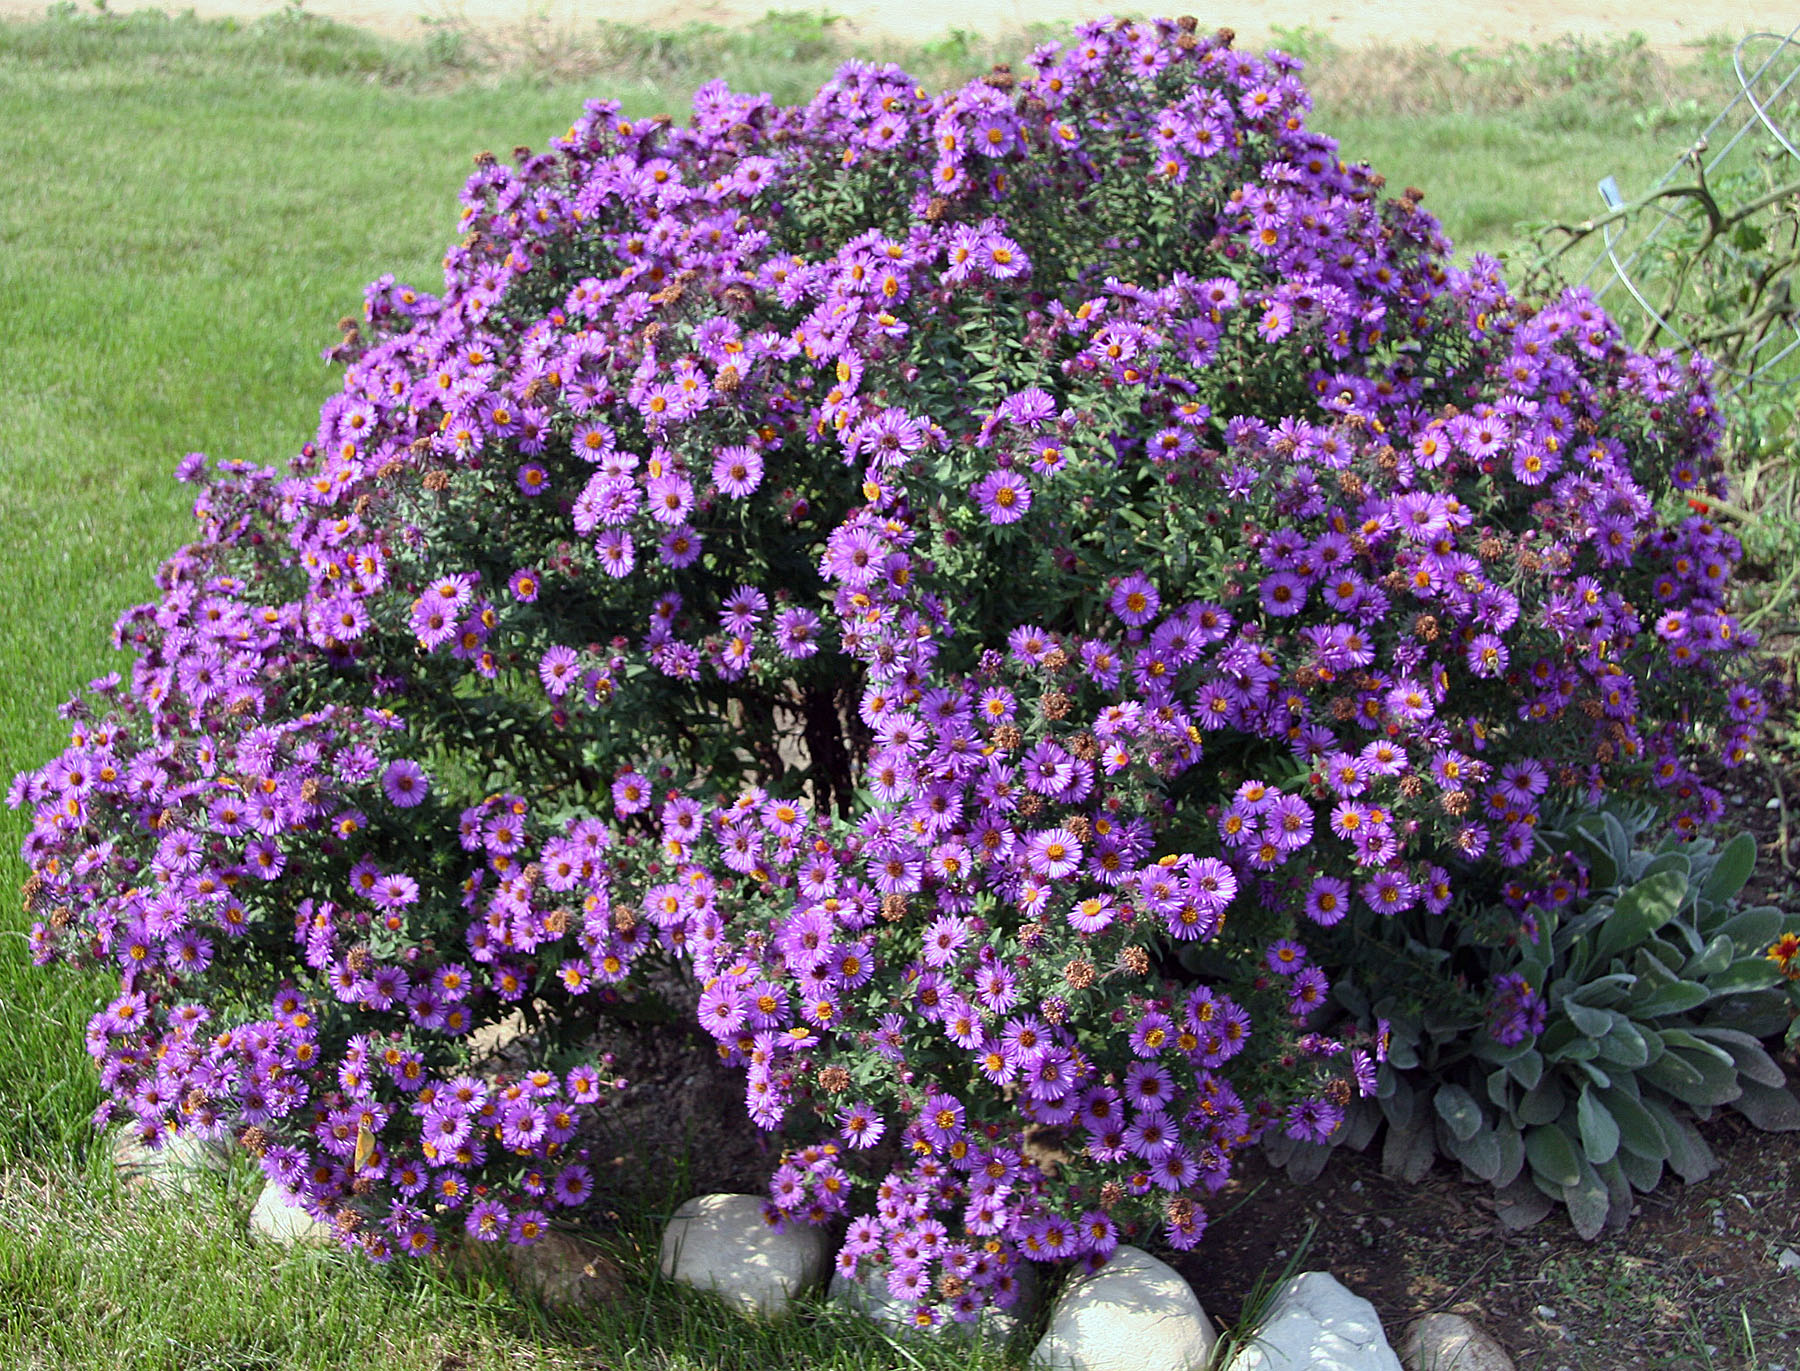 Aster Symphyotrichum purple Dome plant crop resize 2